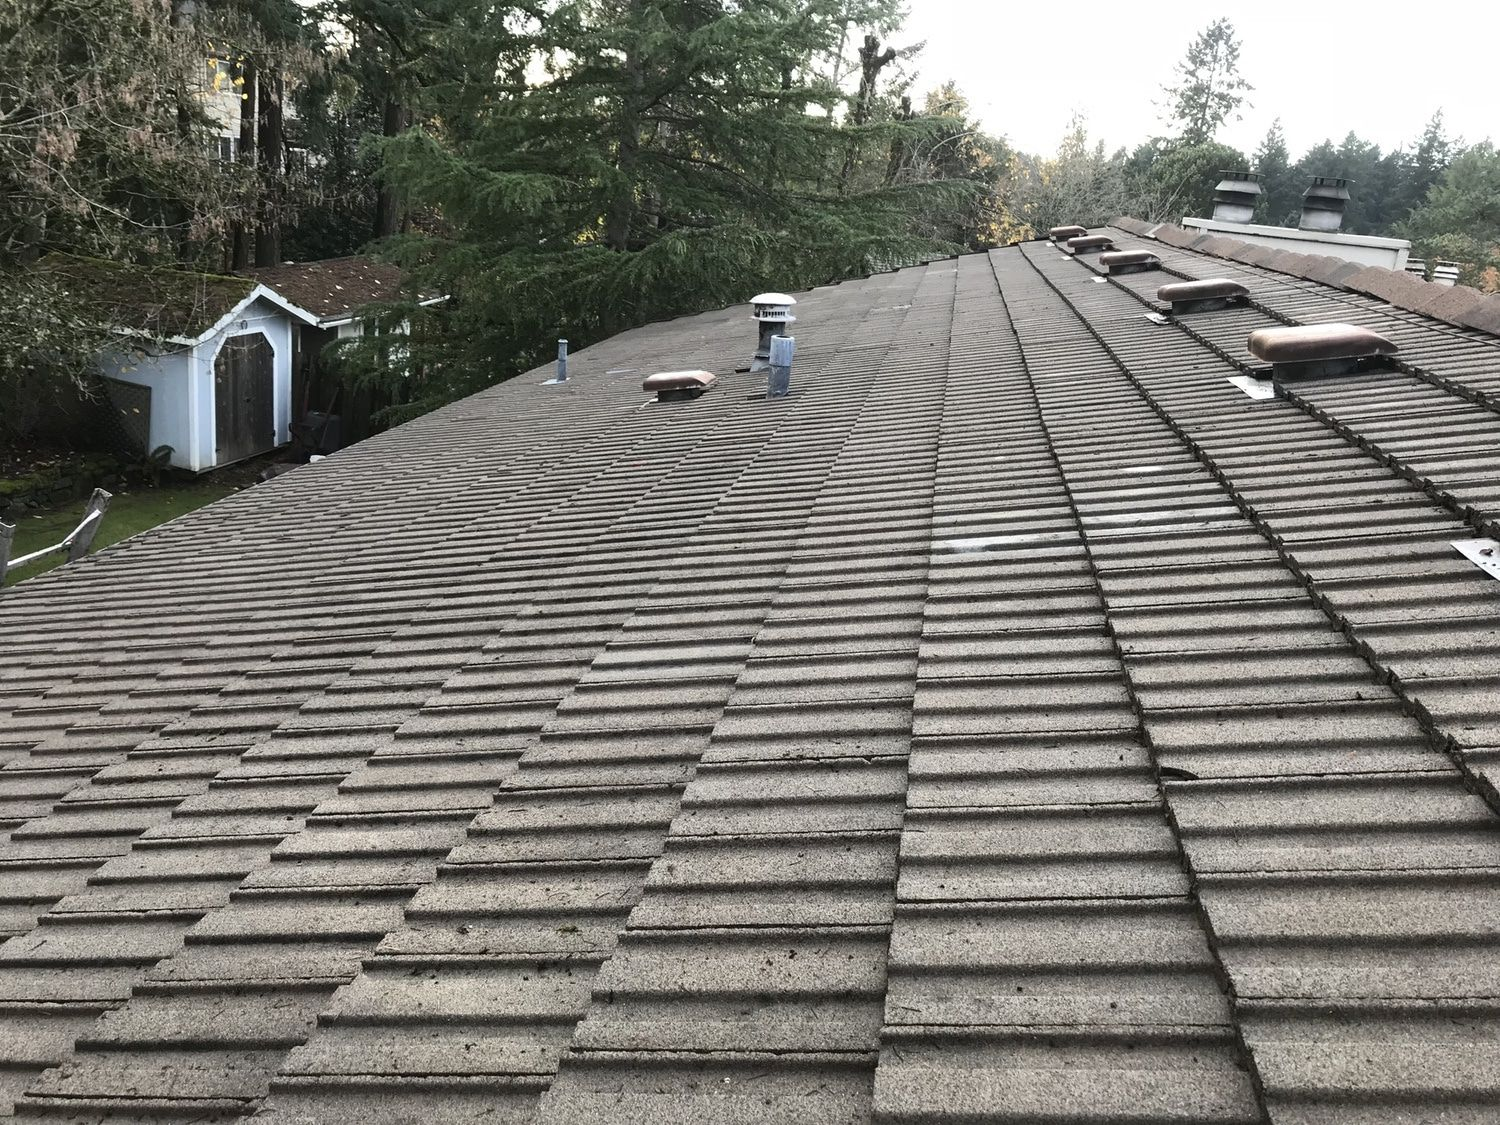 Cleaning Concrete Roof Tiles Di 2020